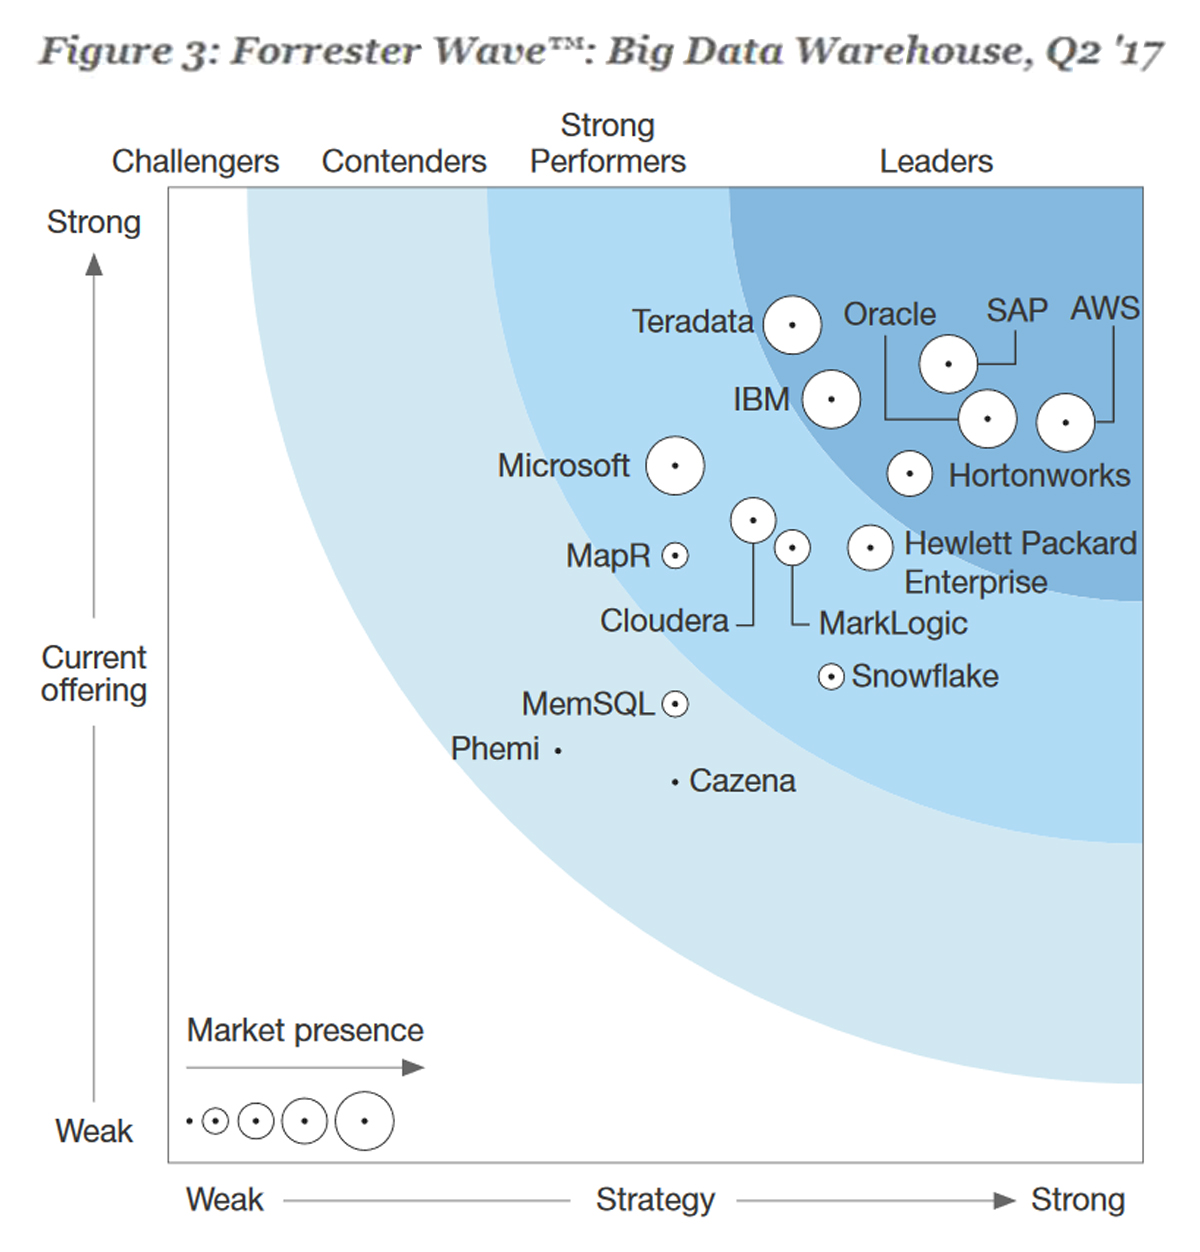 Отчет «Forrester Wave™: Enterprise Data Warehouse», 2 кв. 2017 г.